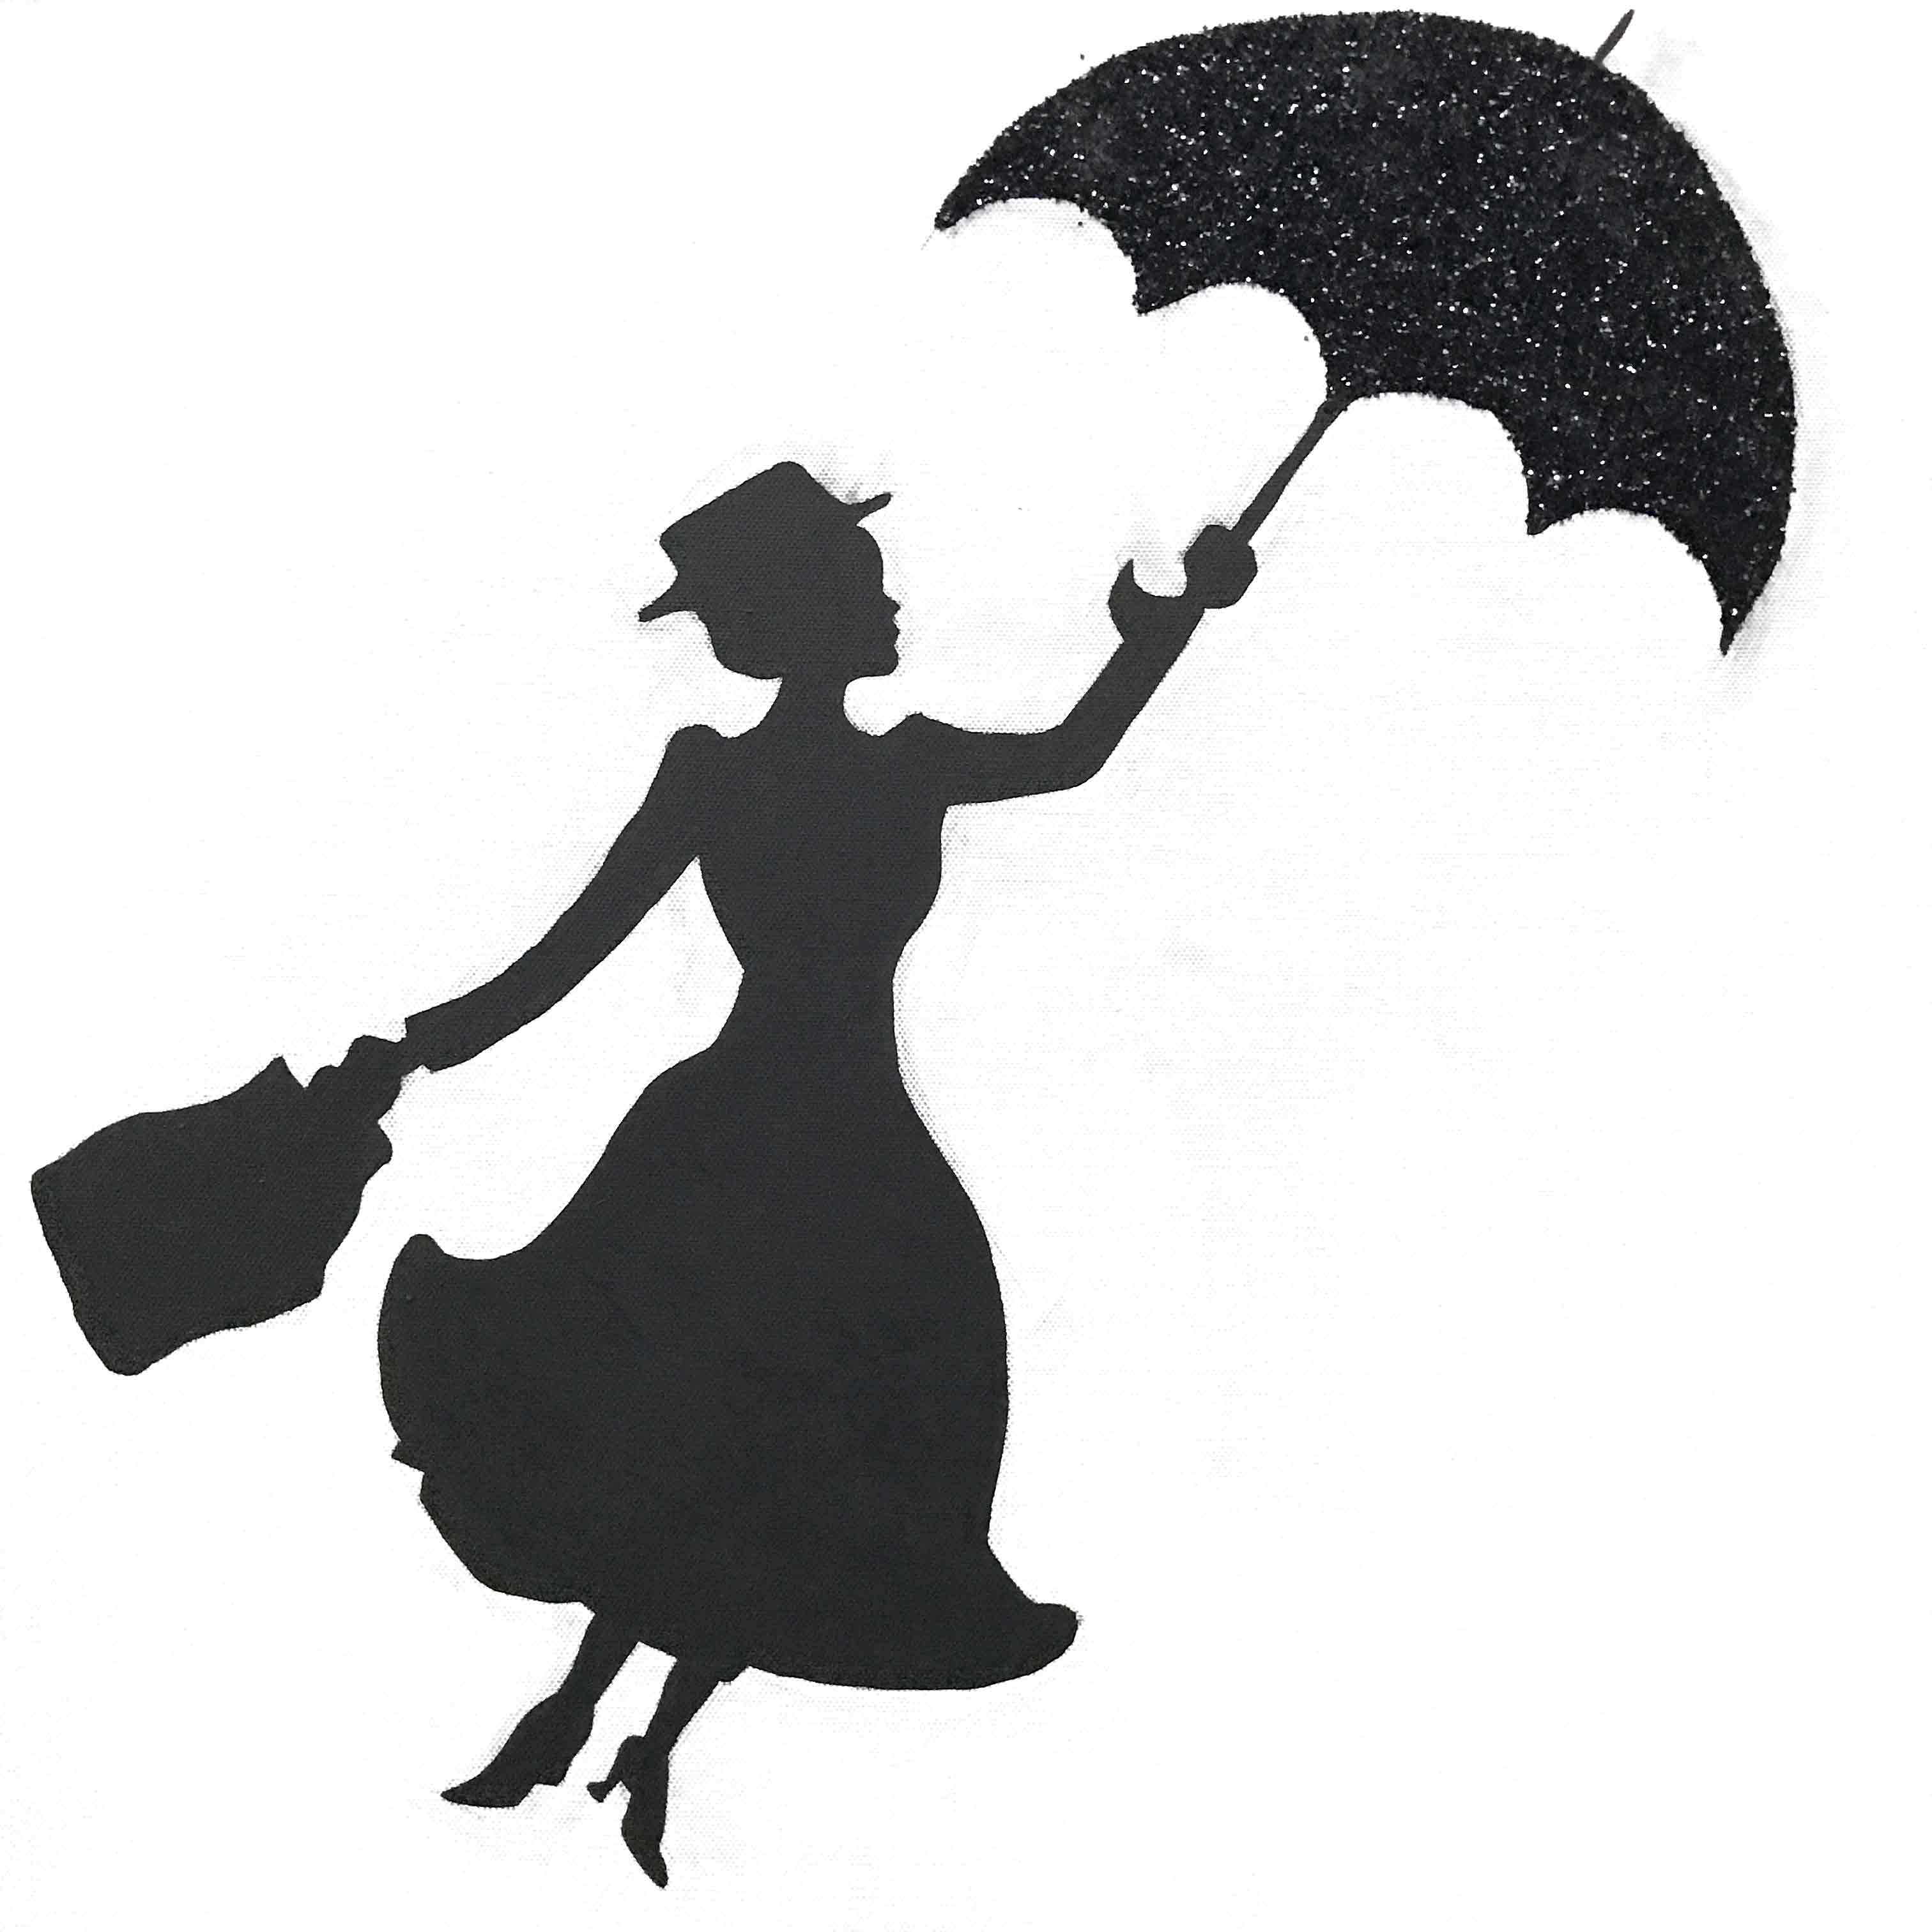 Mary Poppins Das Broadway Musical in addition Elizabeth Bourgine m21404 likewise Id94930 further Heloise Letissier Christine And The Que m2097349 as well The Crow Release Date 2019 Jason Momoa 1202715956. on oscars